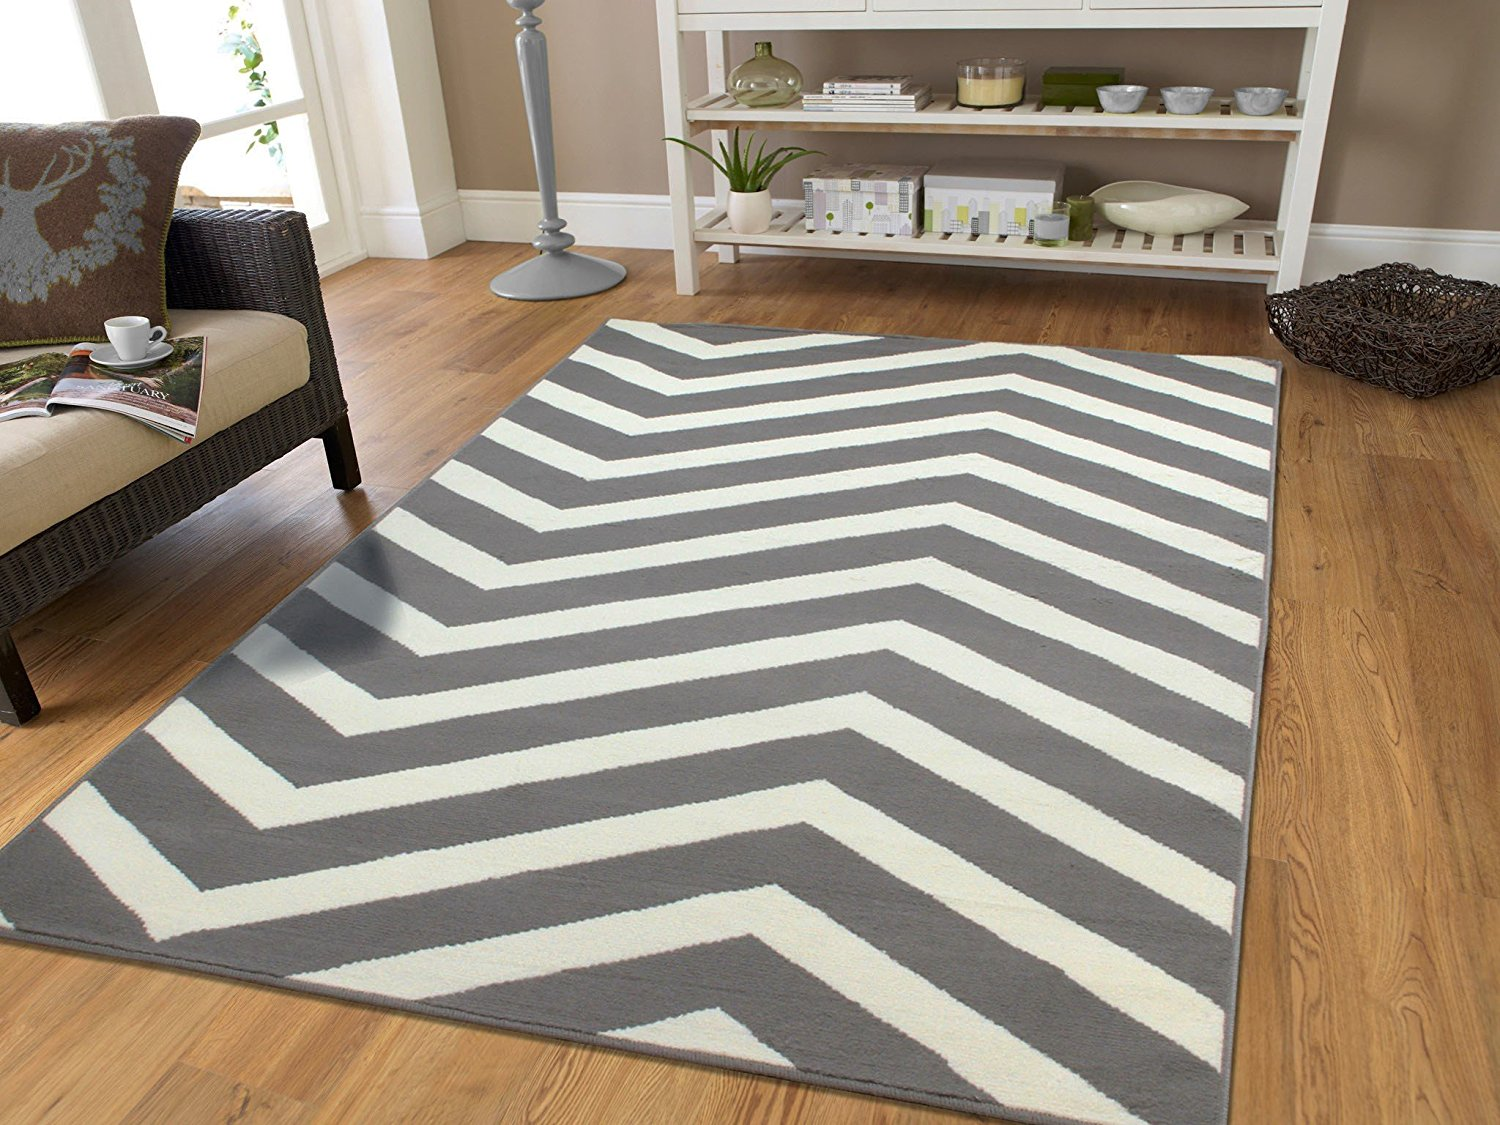 large chevron rugs 8x11 gray and white area rugs for